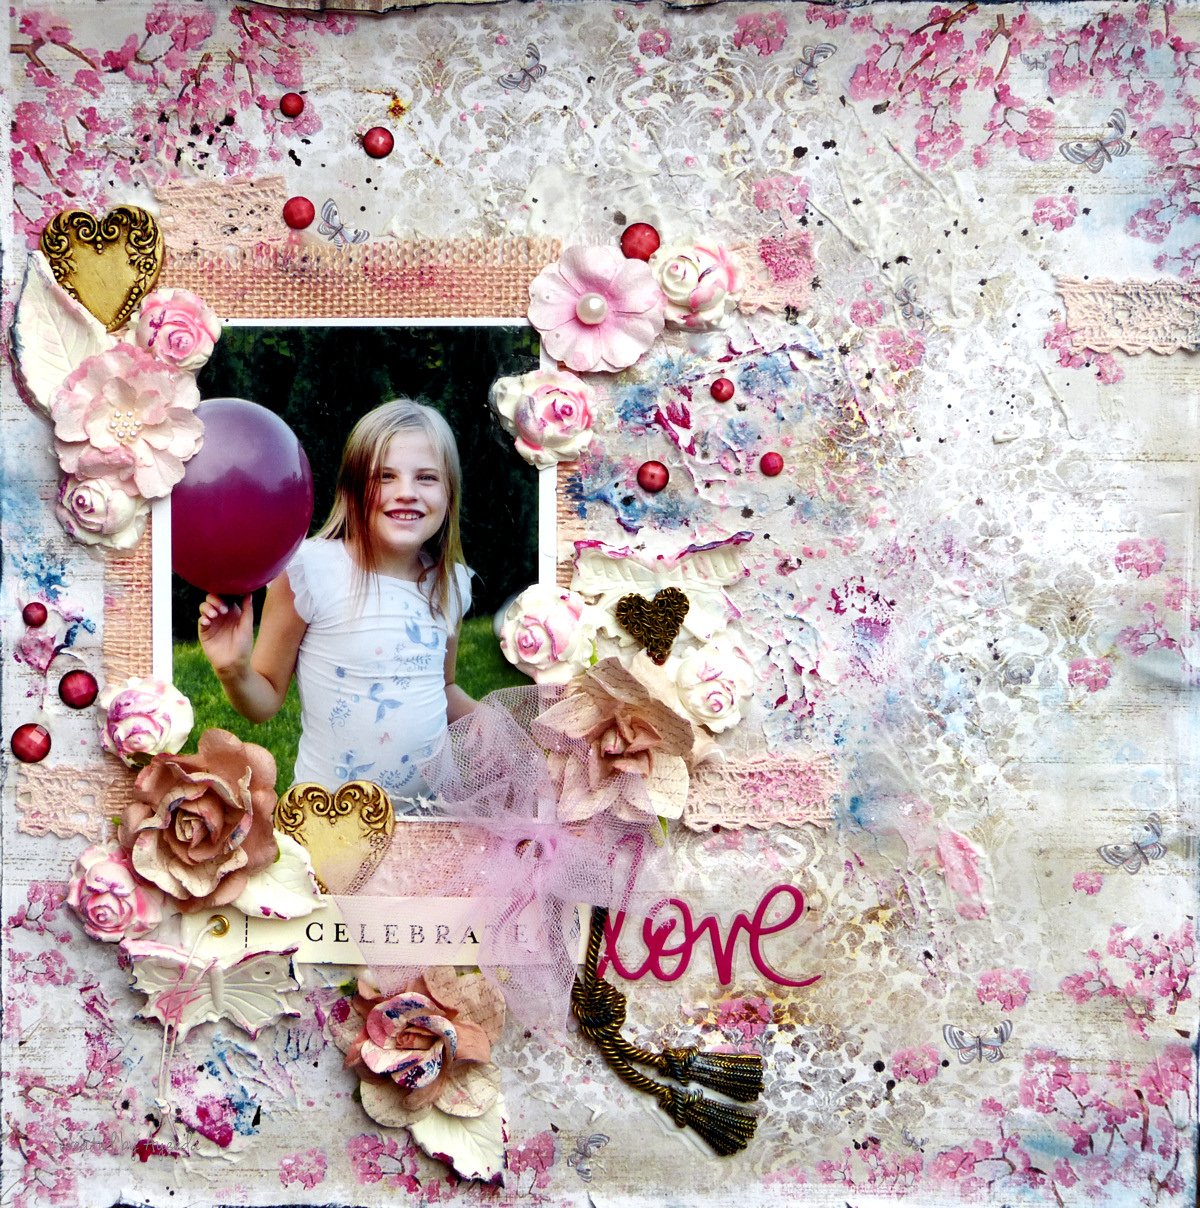 http://13pasji.blogspot.com/2014/10/love-layout-and-mixed-media-canvas-with.html